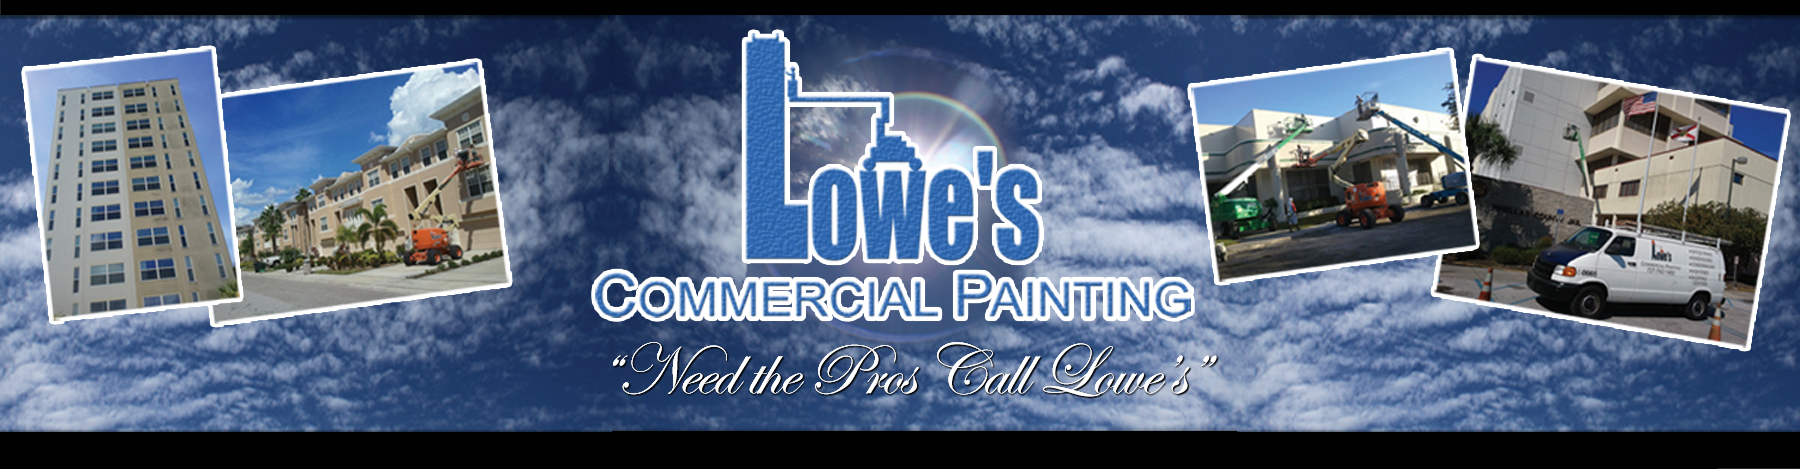 Lowes Commercial Painting